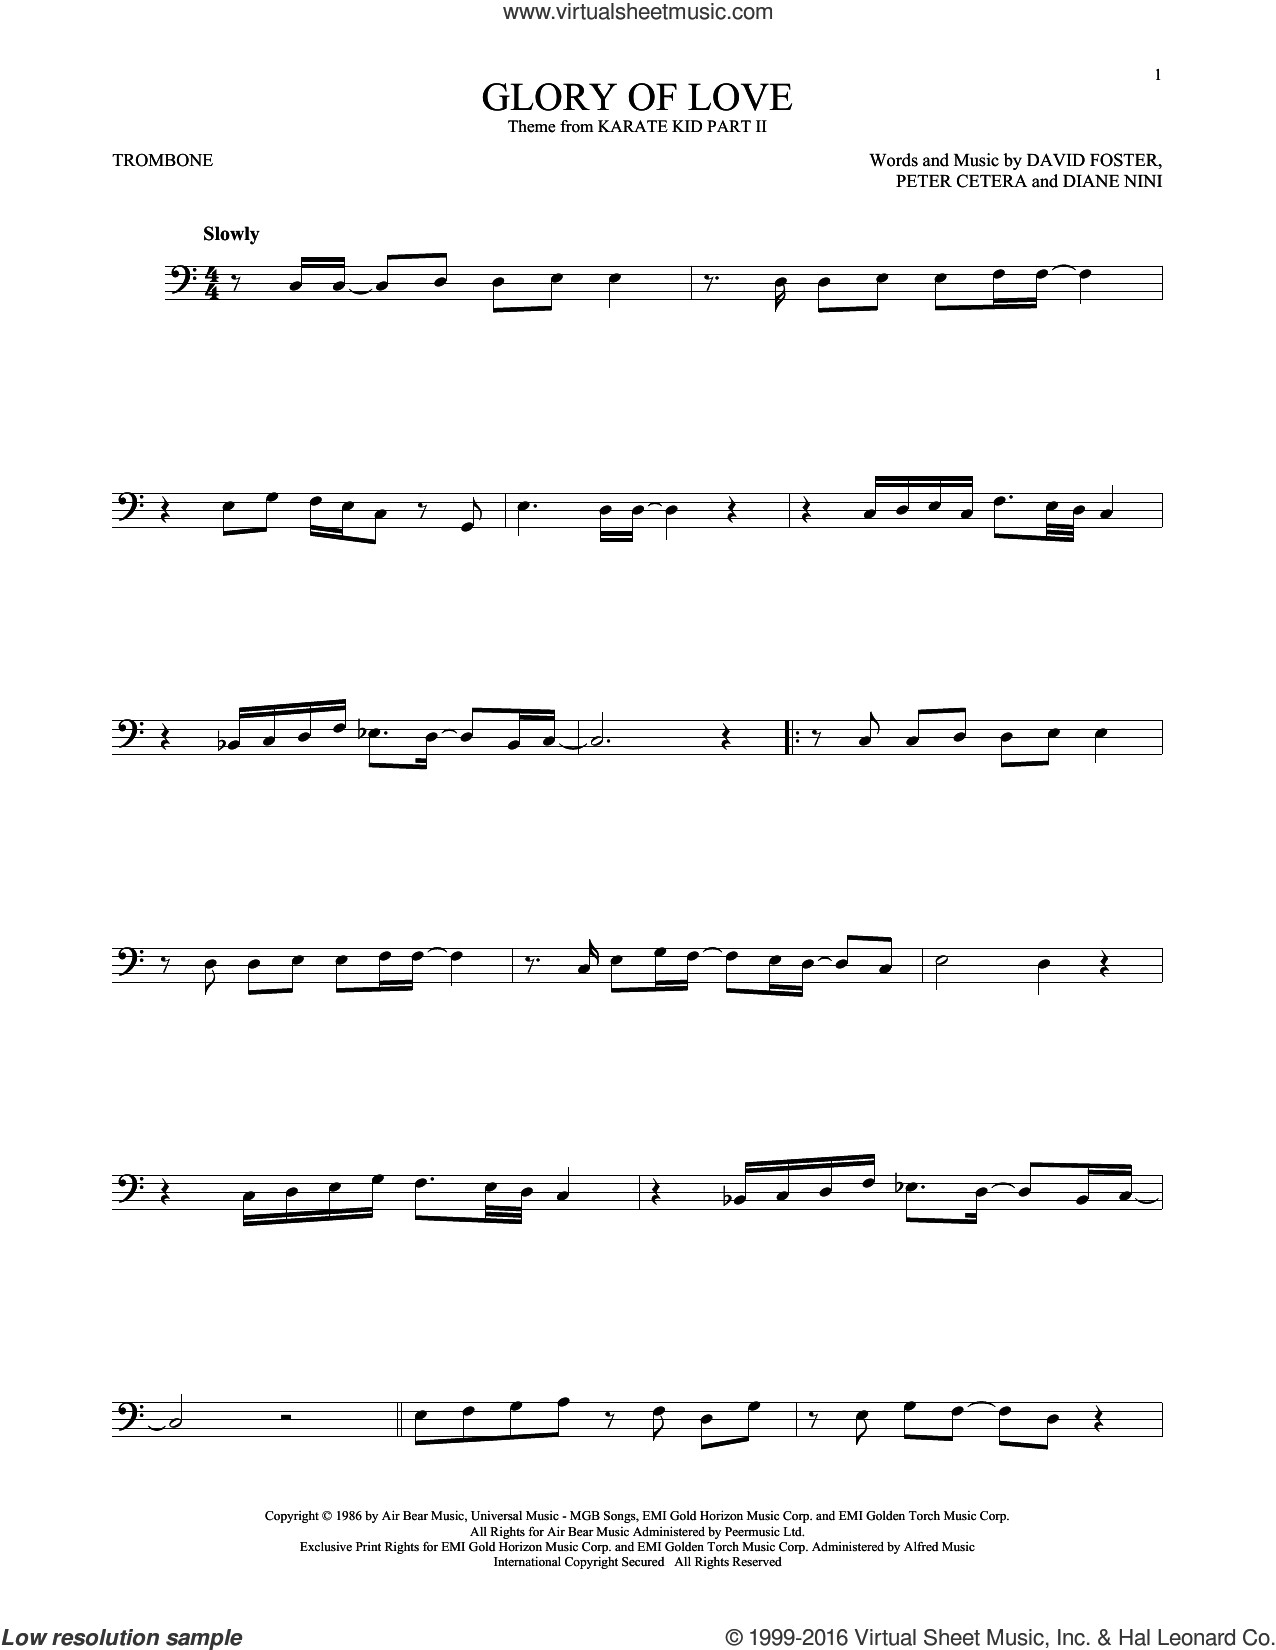 Glory Of Love sheet music for trombone solo by Peter Cetera, David Foster and Diane Nini, intermediate skill level